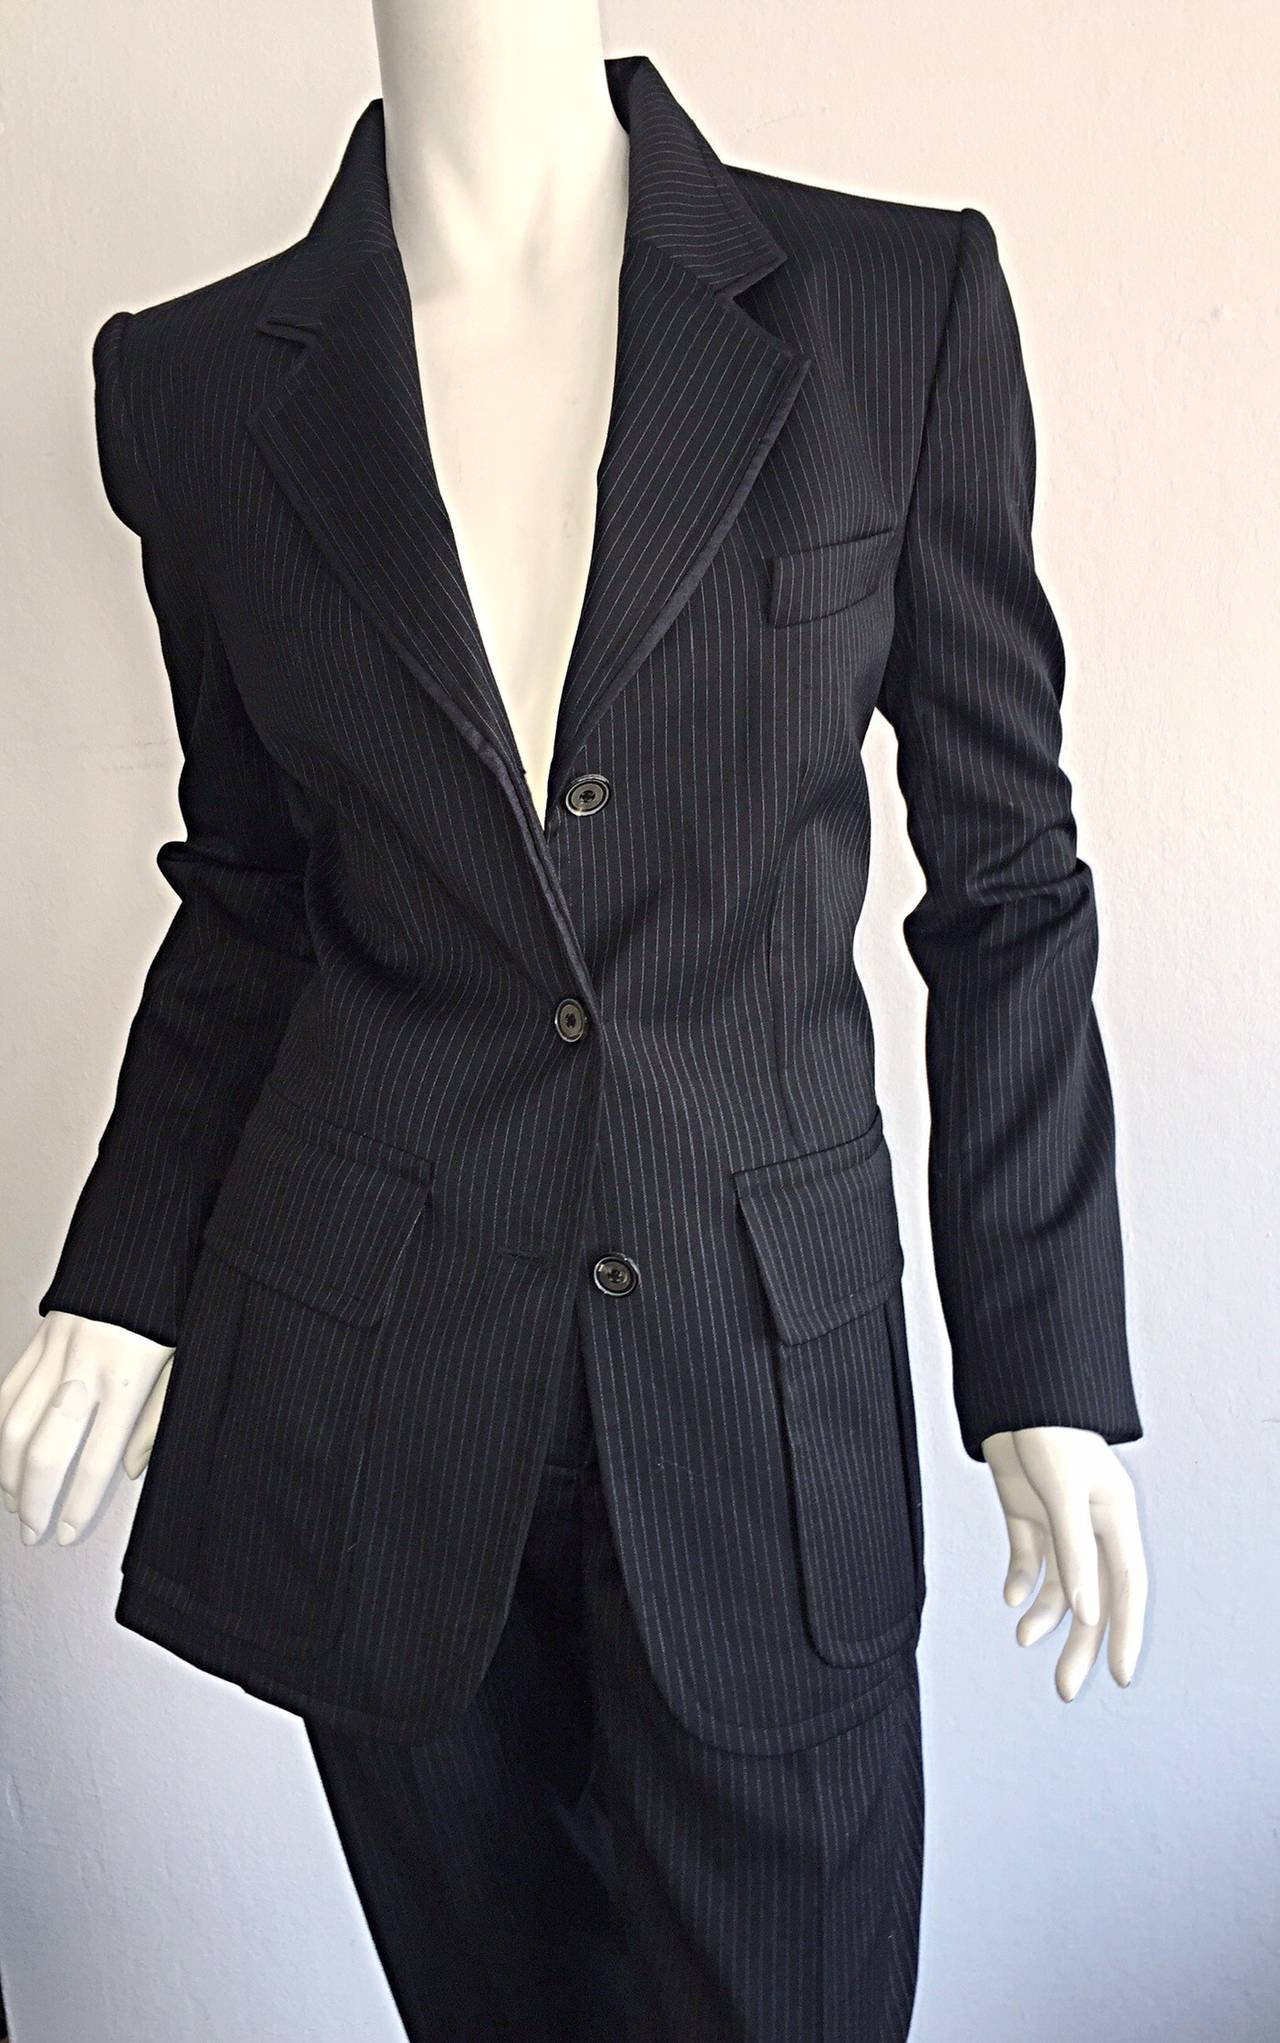 BRAND NEW, never worn, Yves Saint Laurent YSL  by Tom Ford! Classic take on the original 'le Smoking' suit by the ONE and ONLY Yves Saint Laurent! Black and white pinstripe, with a dark denim edging. Safari-style pockets on both sides of waist on